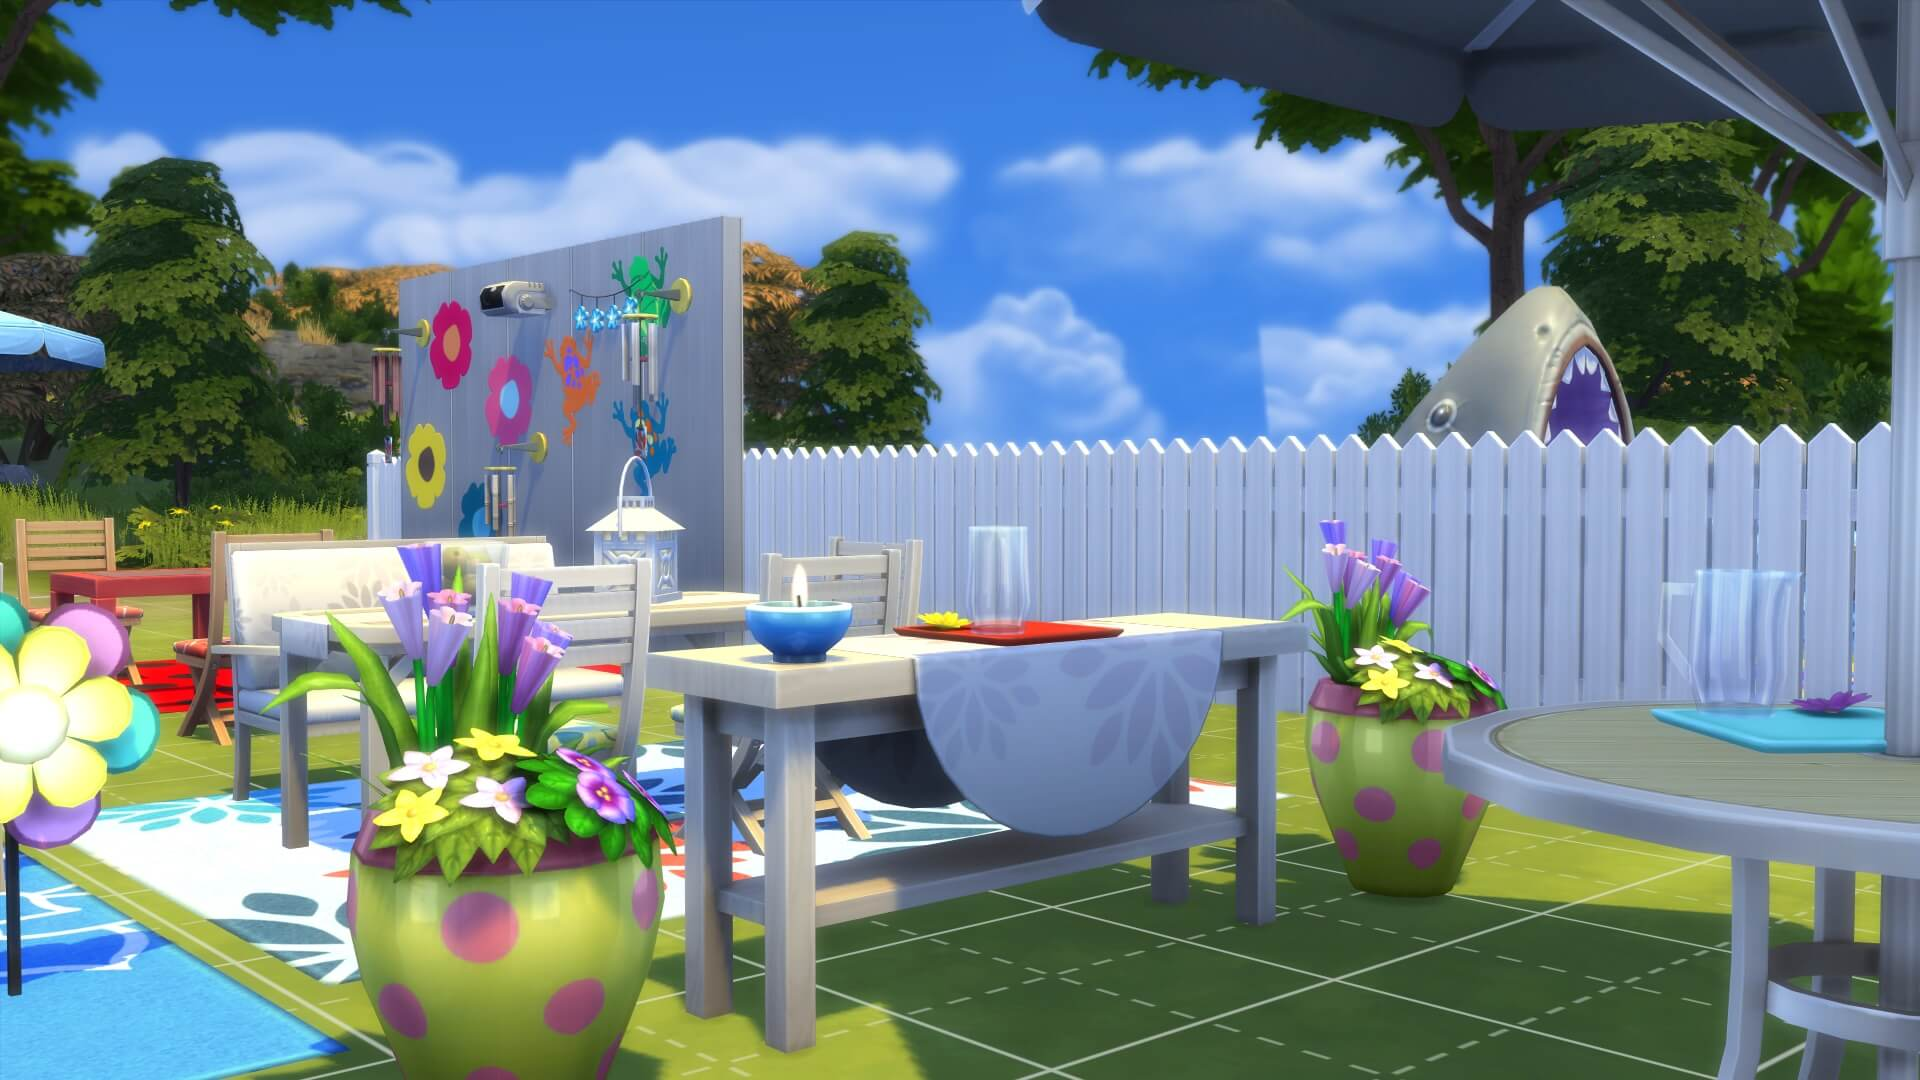 Sims 3 Teppiche Download Sims 4 Teppiche Downloaden Fabulous With Sims 4 Teppiche